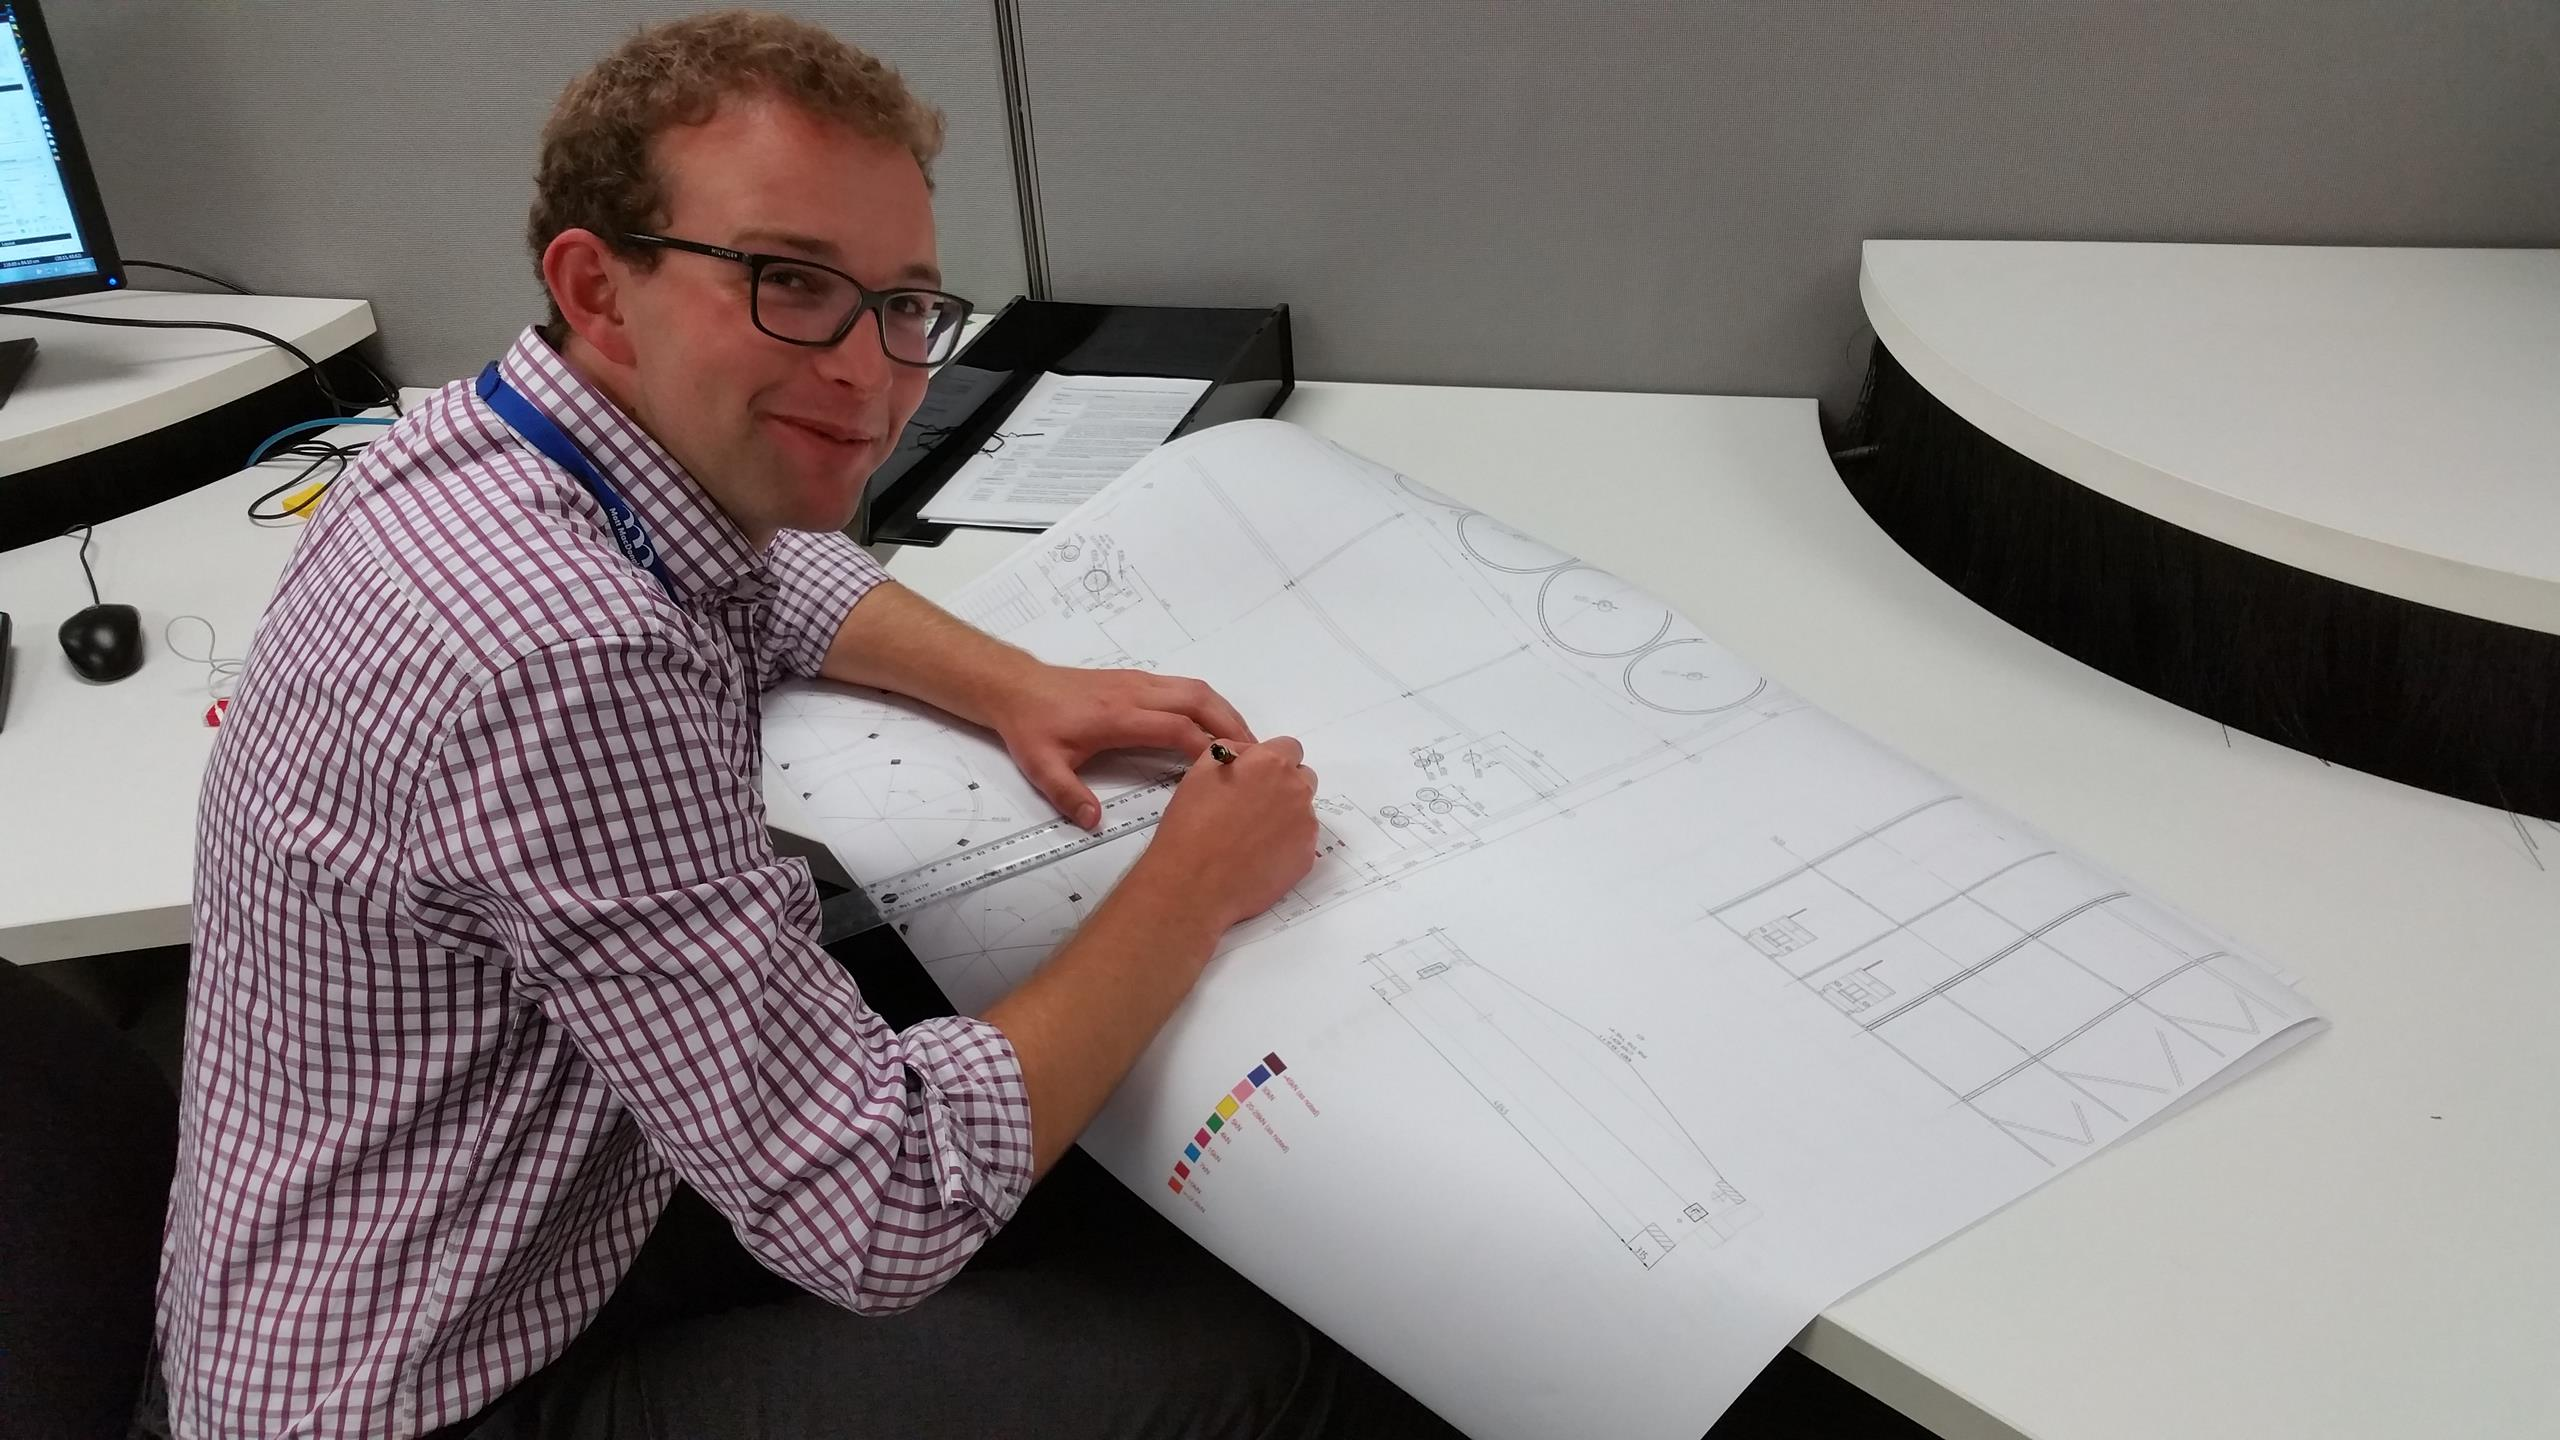 Tom is one of our graduate civil engineers